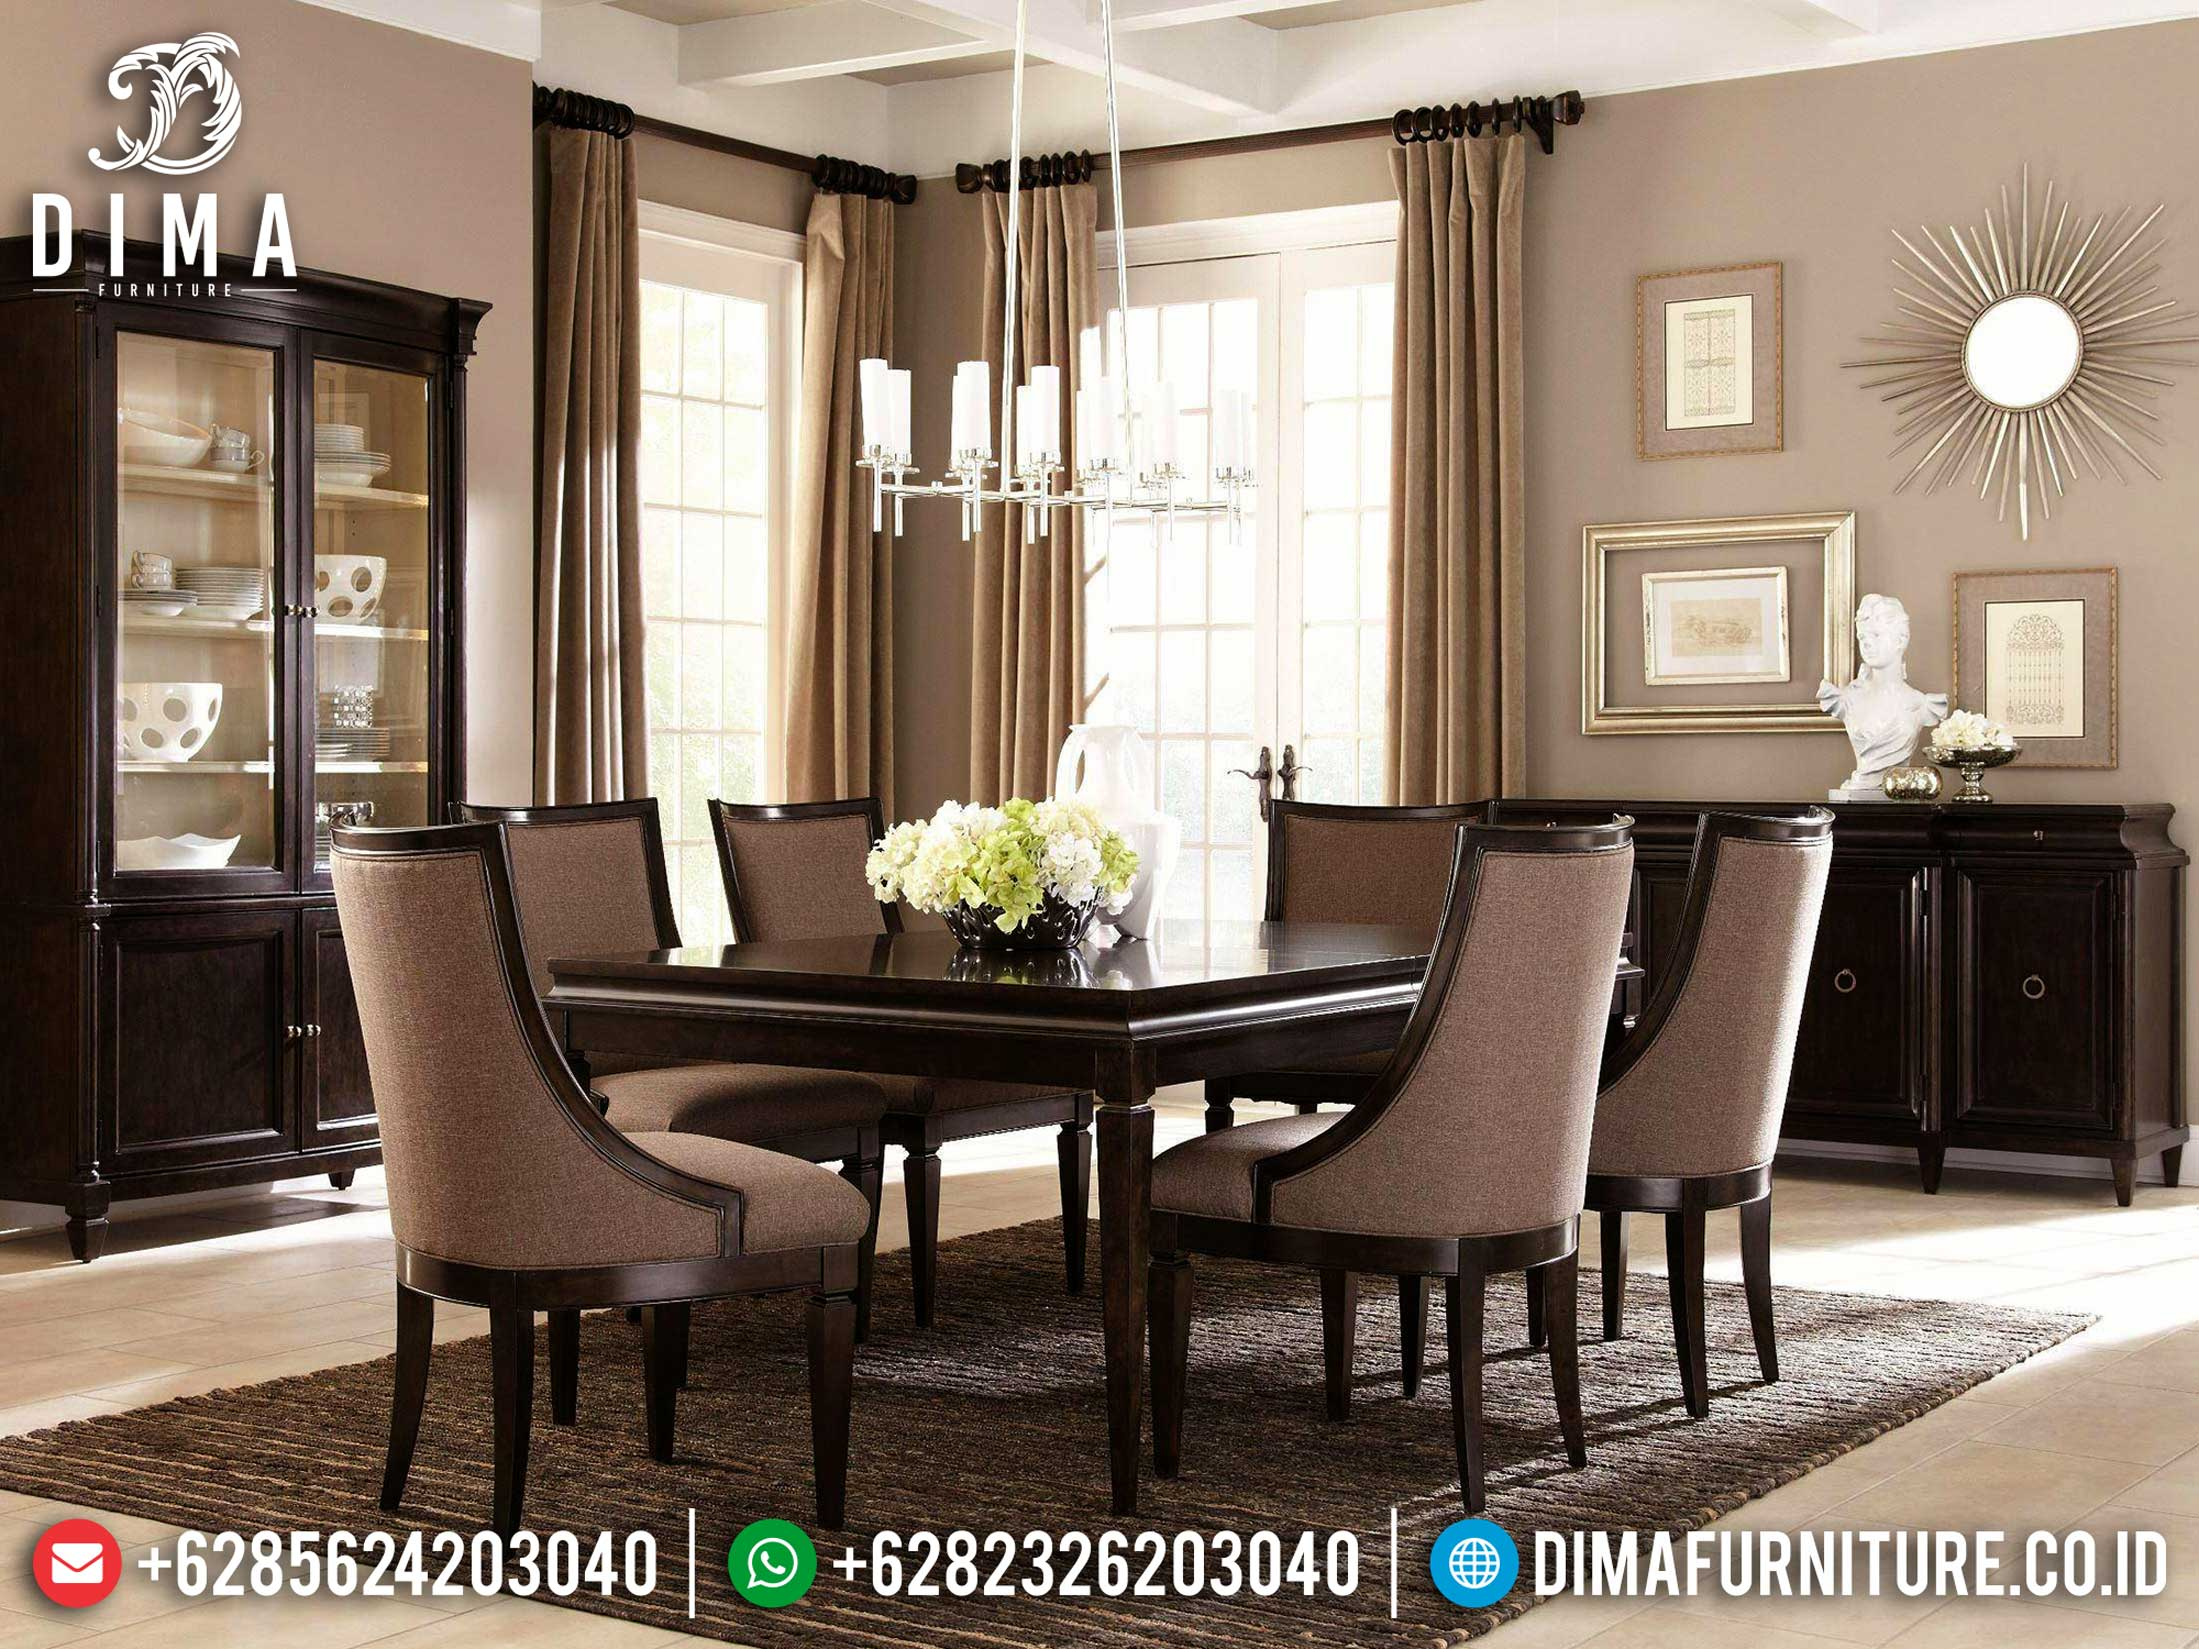 Jual Meja Makan Kayu Jati Natural Salak Dark Brown Luxury Furniture Jepara SK-0450